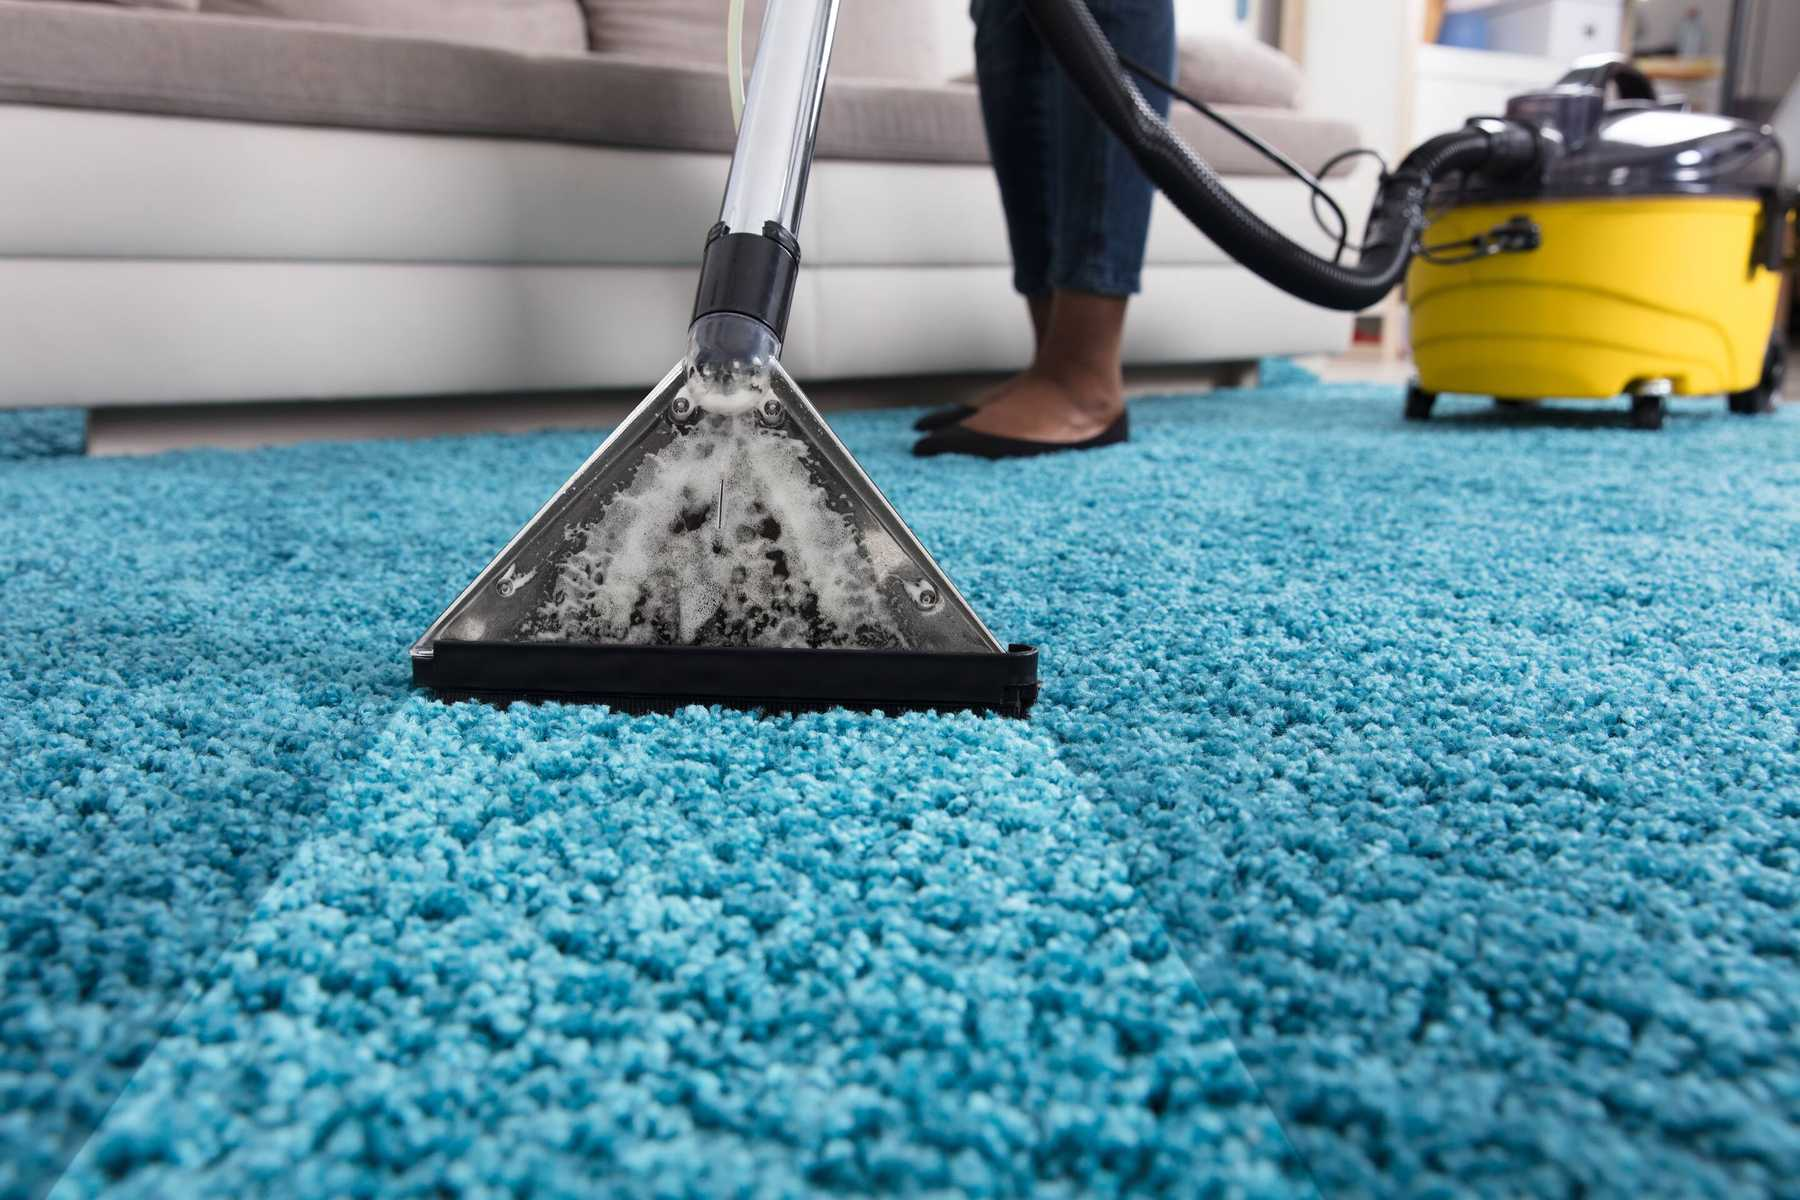 Hustle just a bit and call up the best Carpet Cleaning